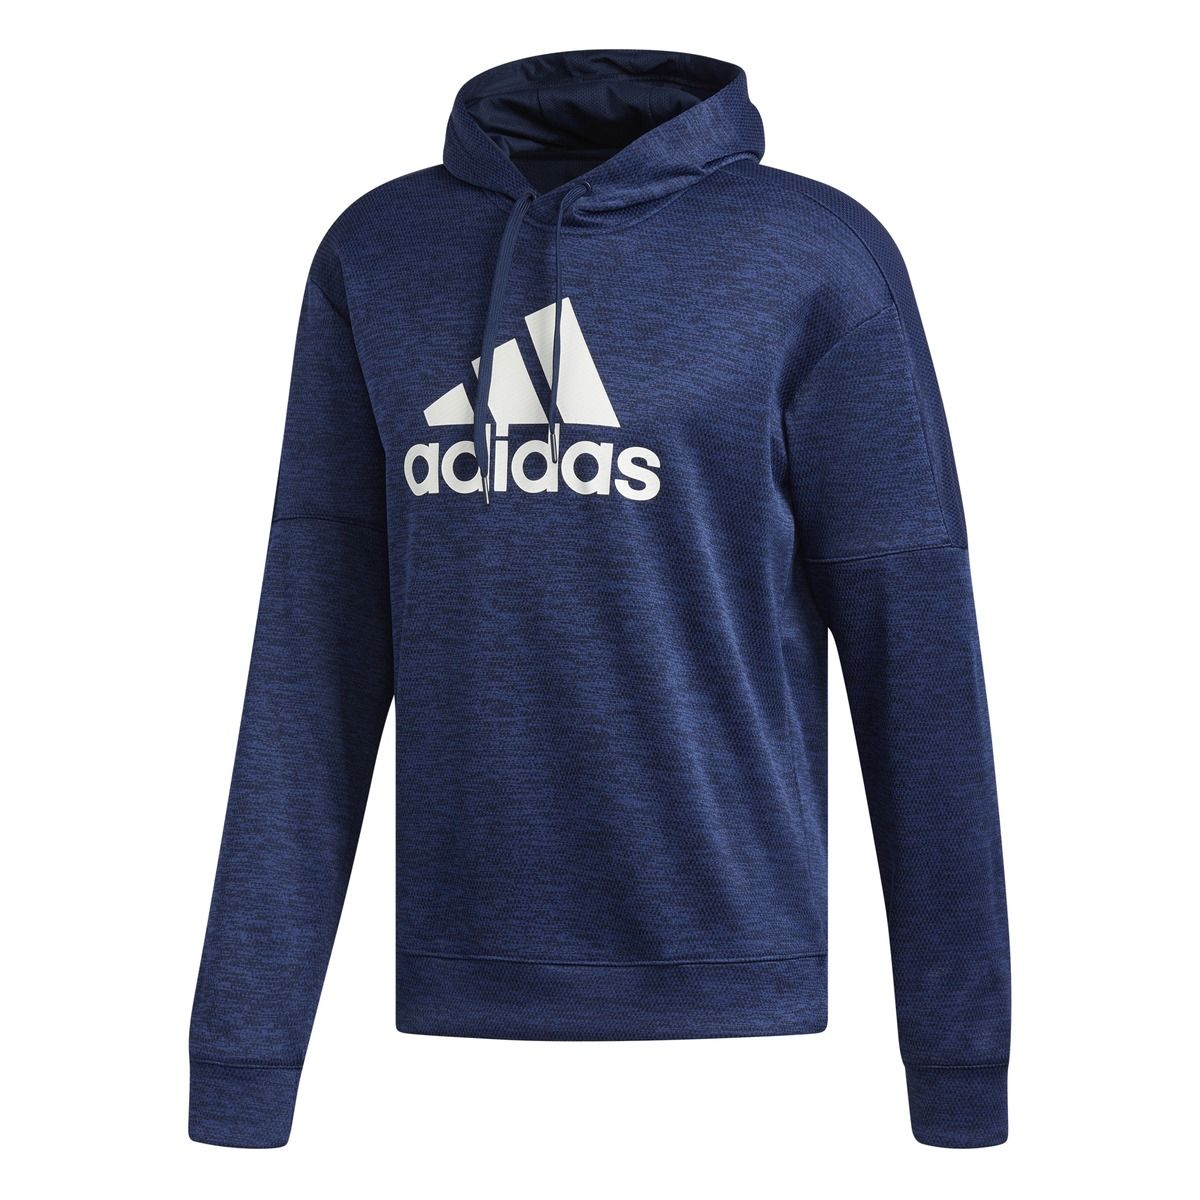 Adidas Men's Team Issue Badge Of Sport Pullover Hoodie - Blue, XXL